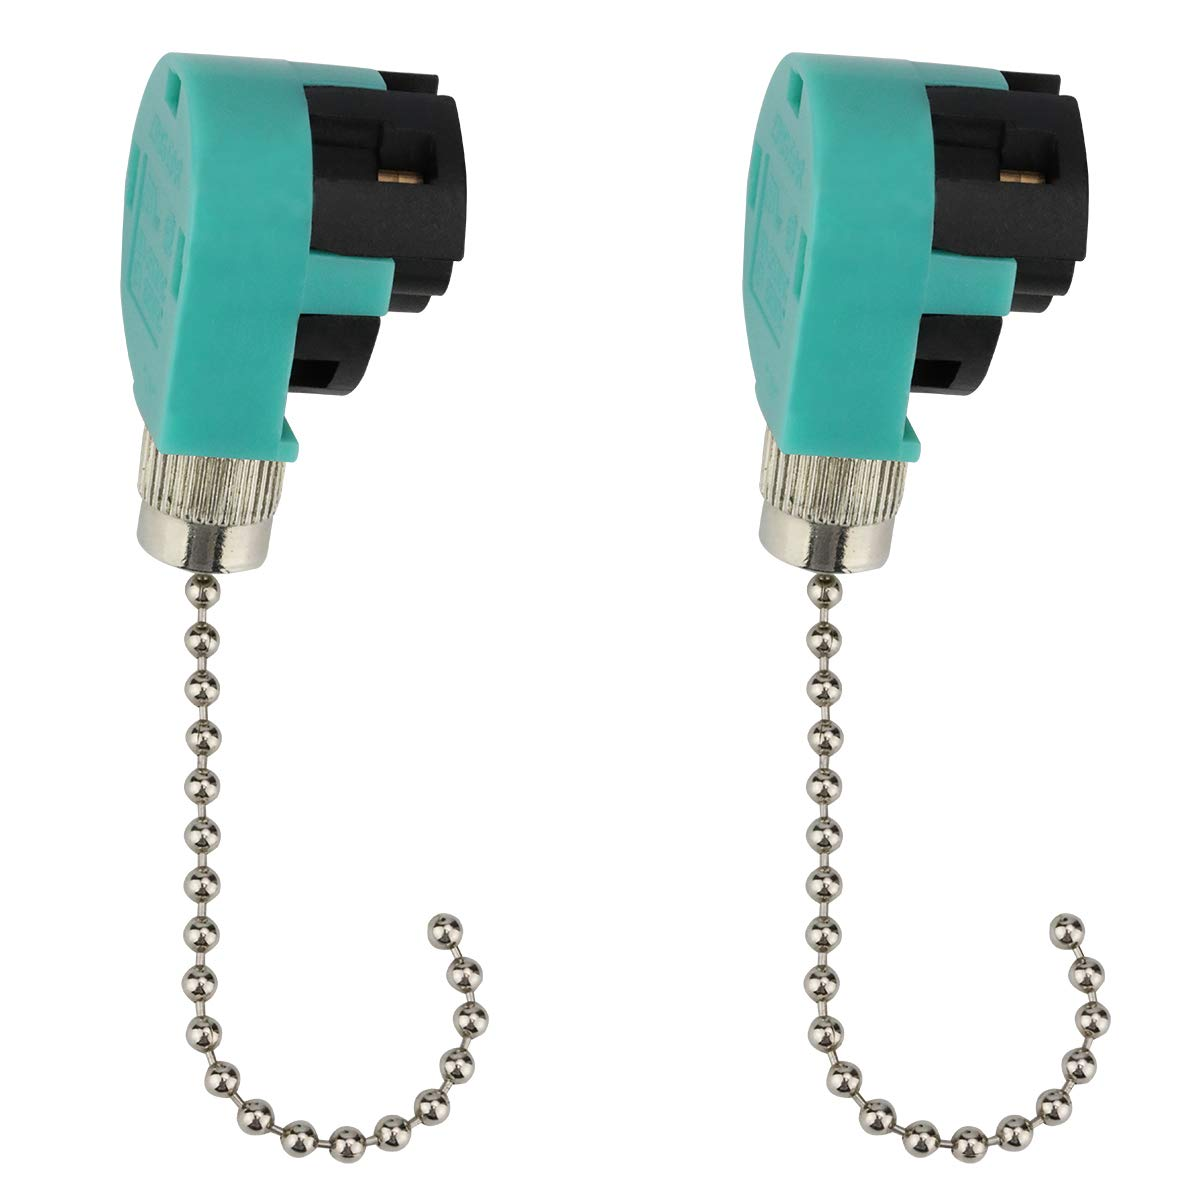 Ceiling Fan Switch ZE-268S6 3 Speed 4 Wire Pull Chain Switch Ceiling Fans, Wall Lamps, Cabinet Light(2 pcs, Nickl)